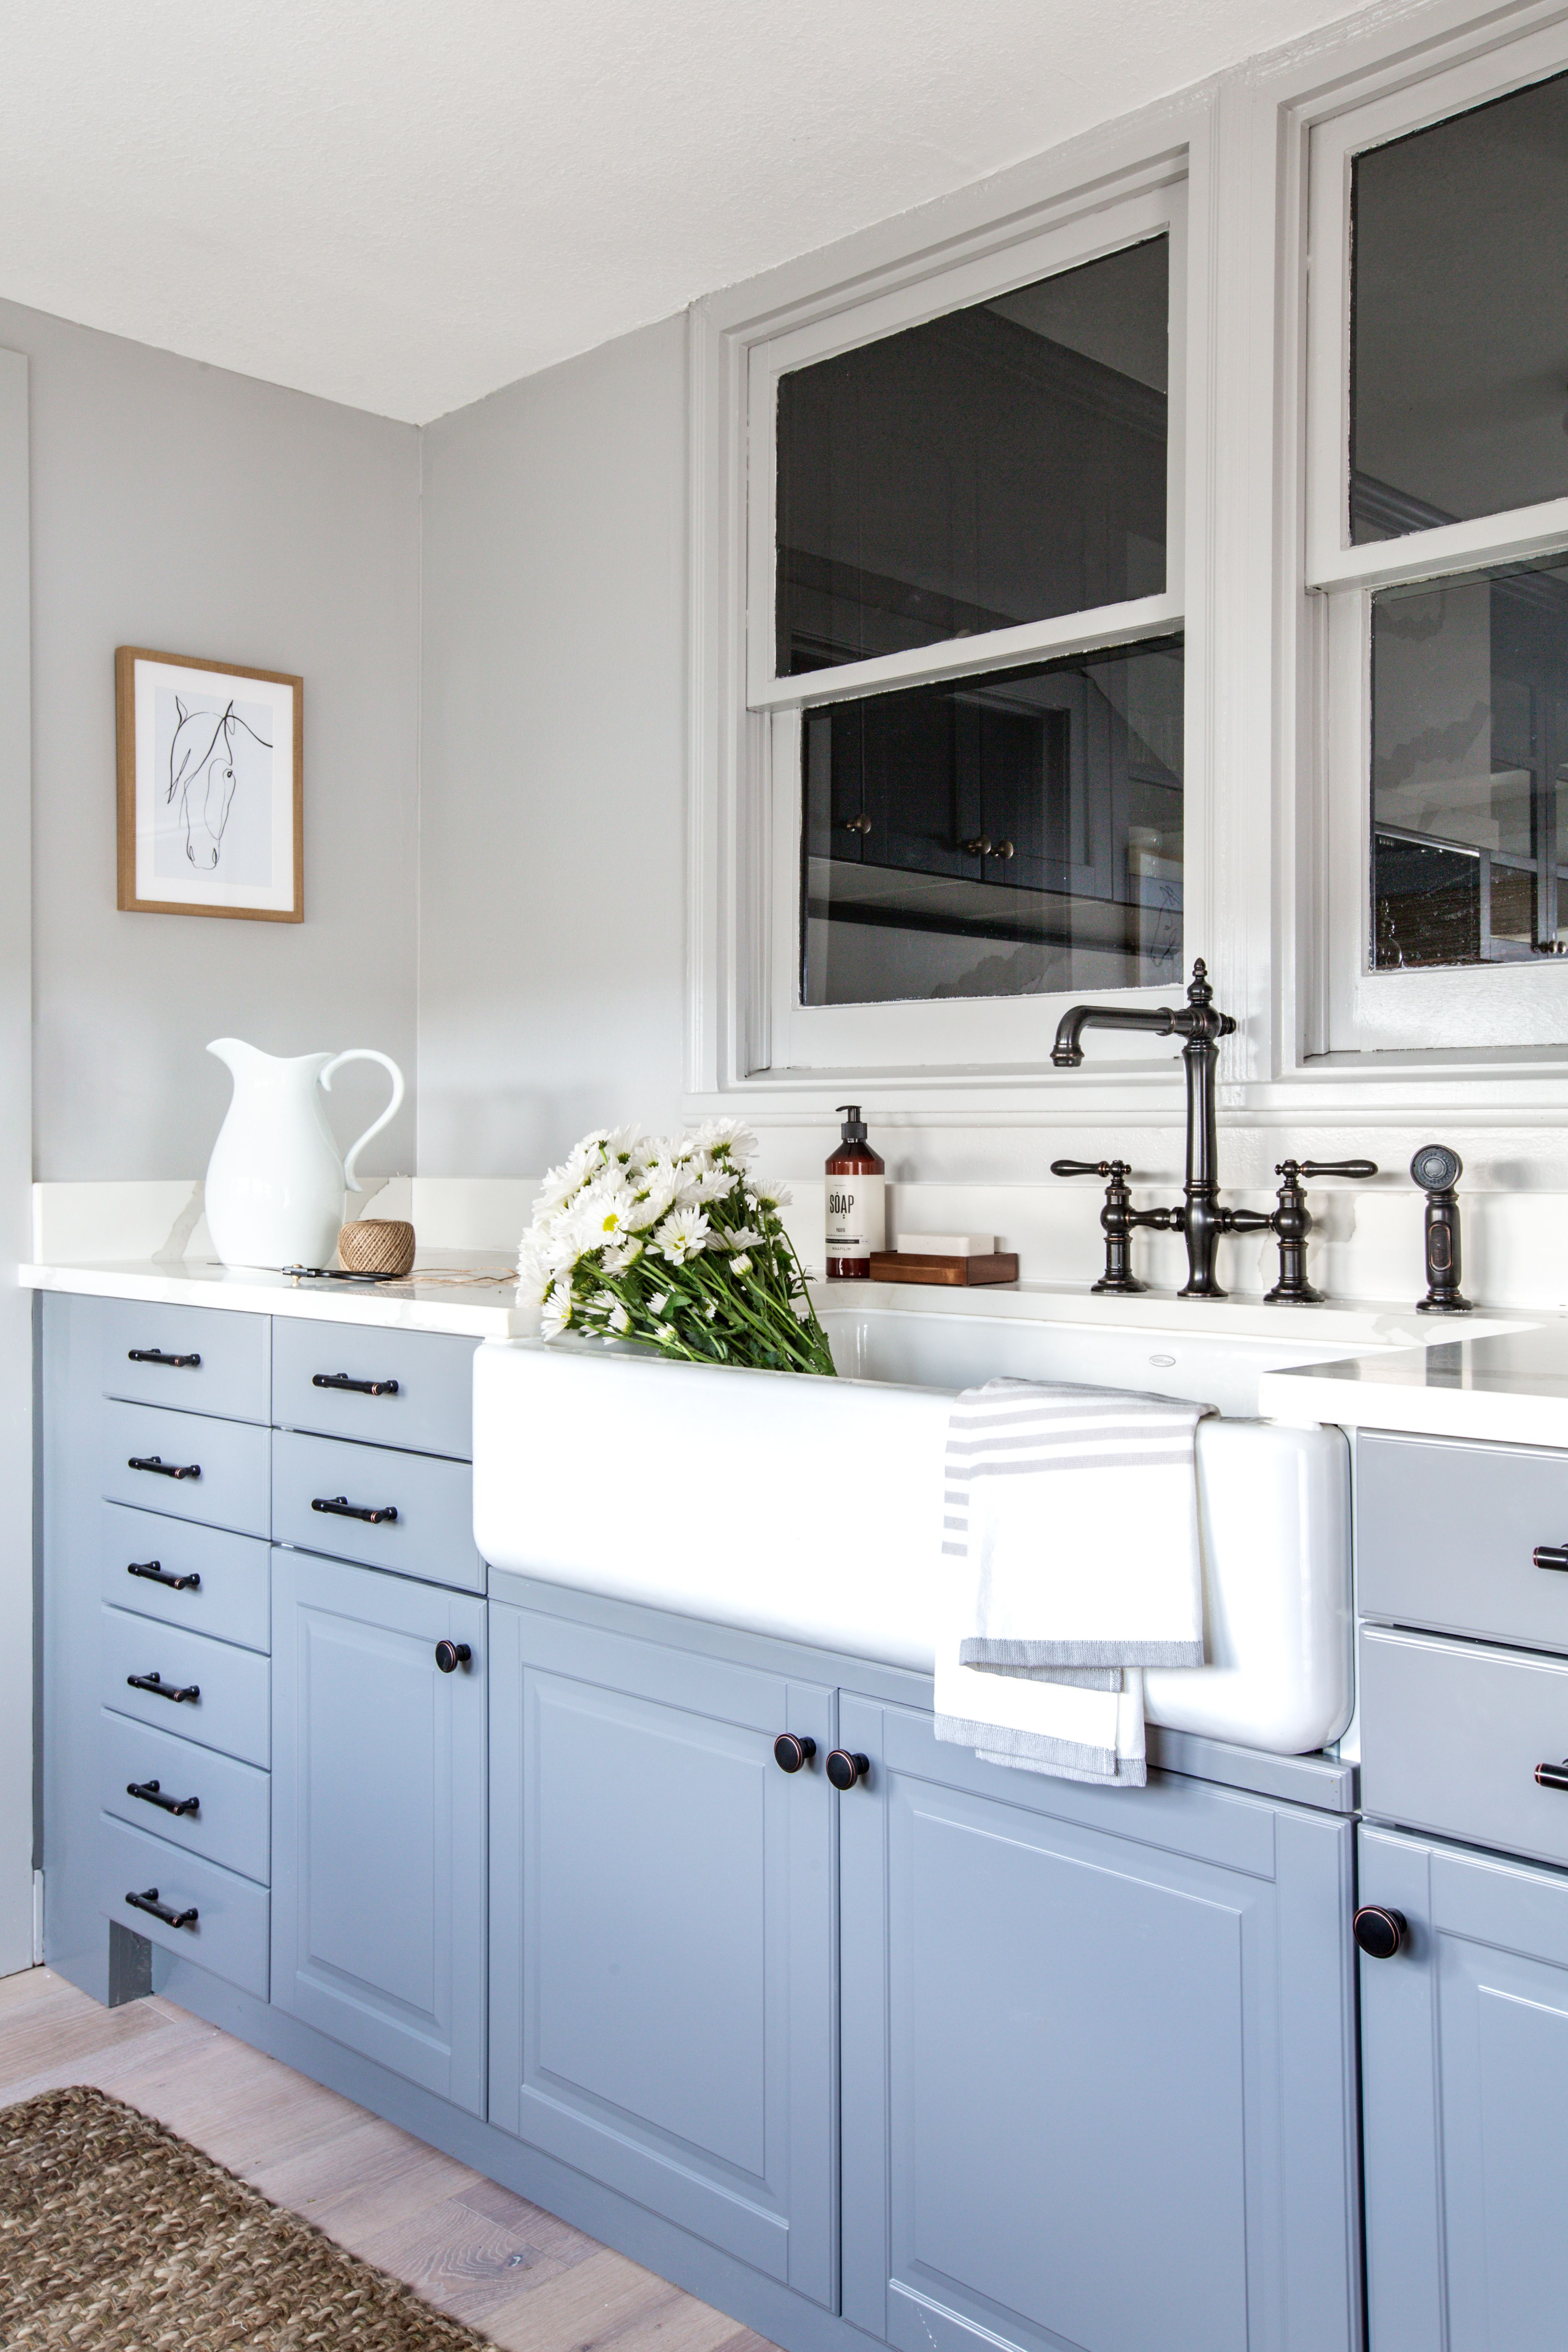 My Parent S Home Makeover With Target And Everything You Need To Shop The Look In 2020 Home Bathroom Farmhouse Style Upper Kitchen Cabinets